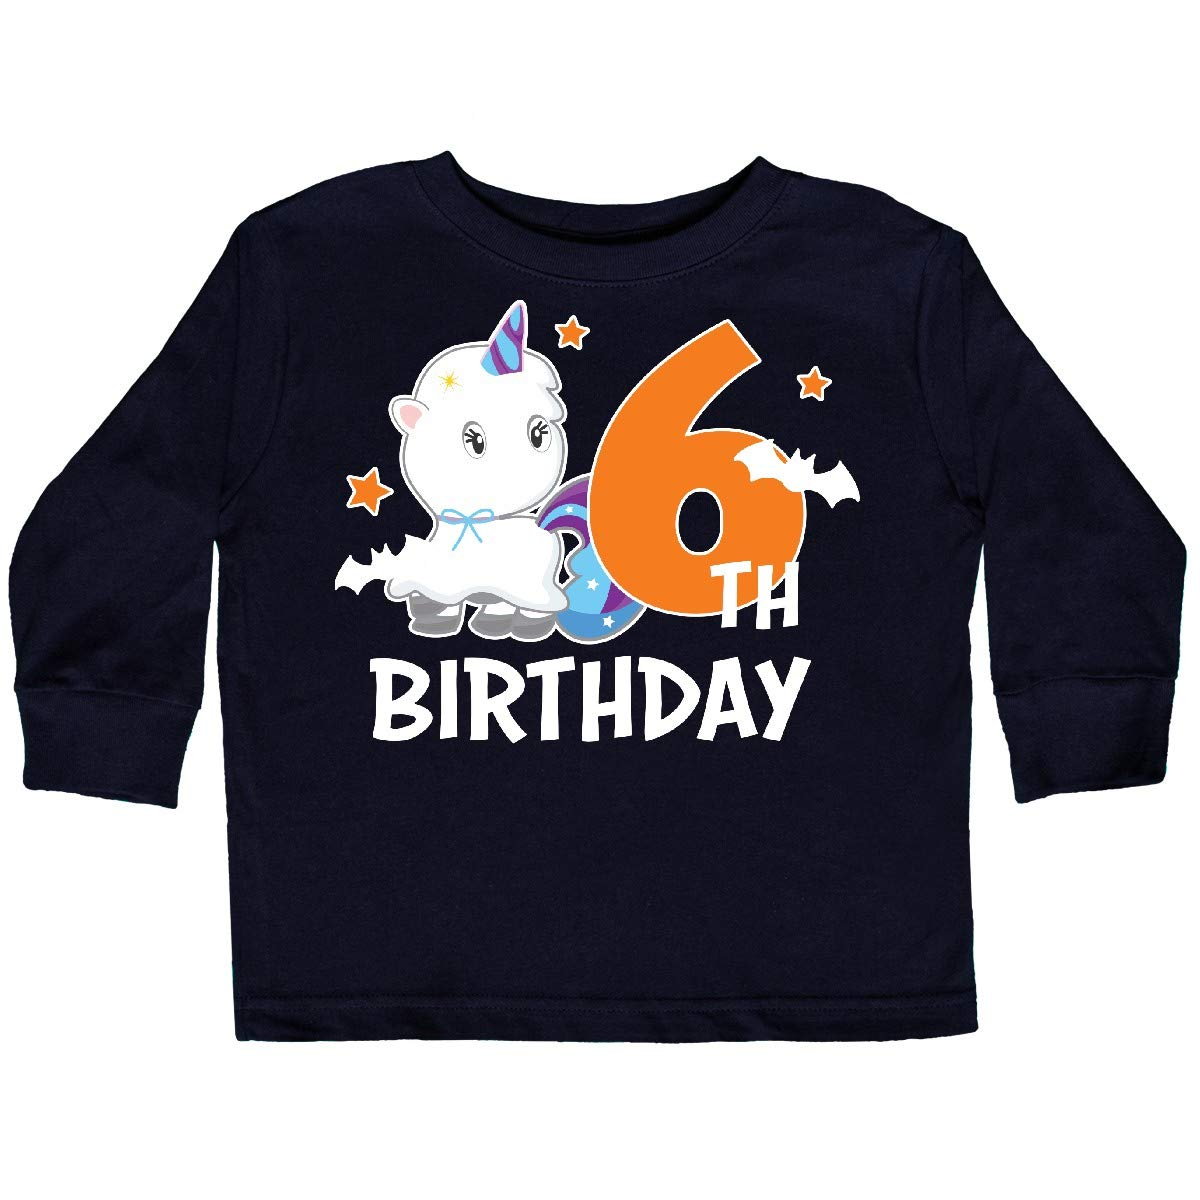 inktastic 6th Birthday with Unicorn Ghost and Bats Toddler Long Sleeve T-Shirt